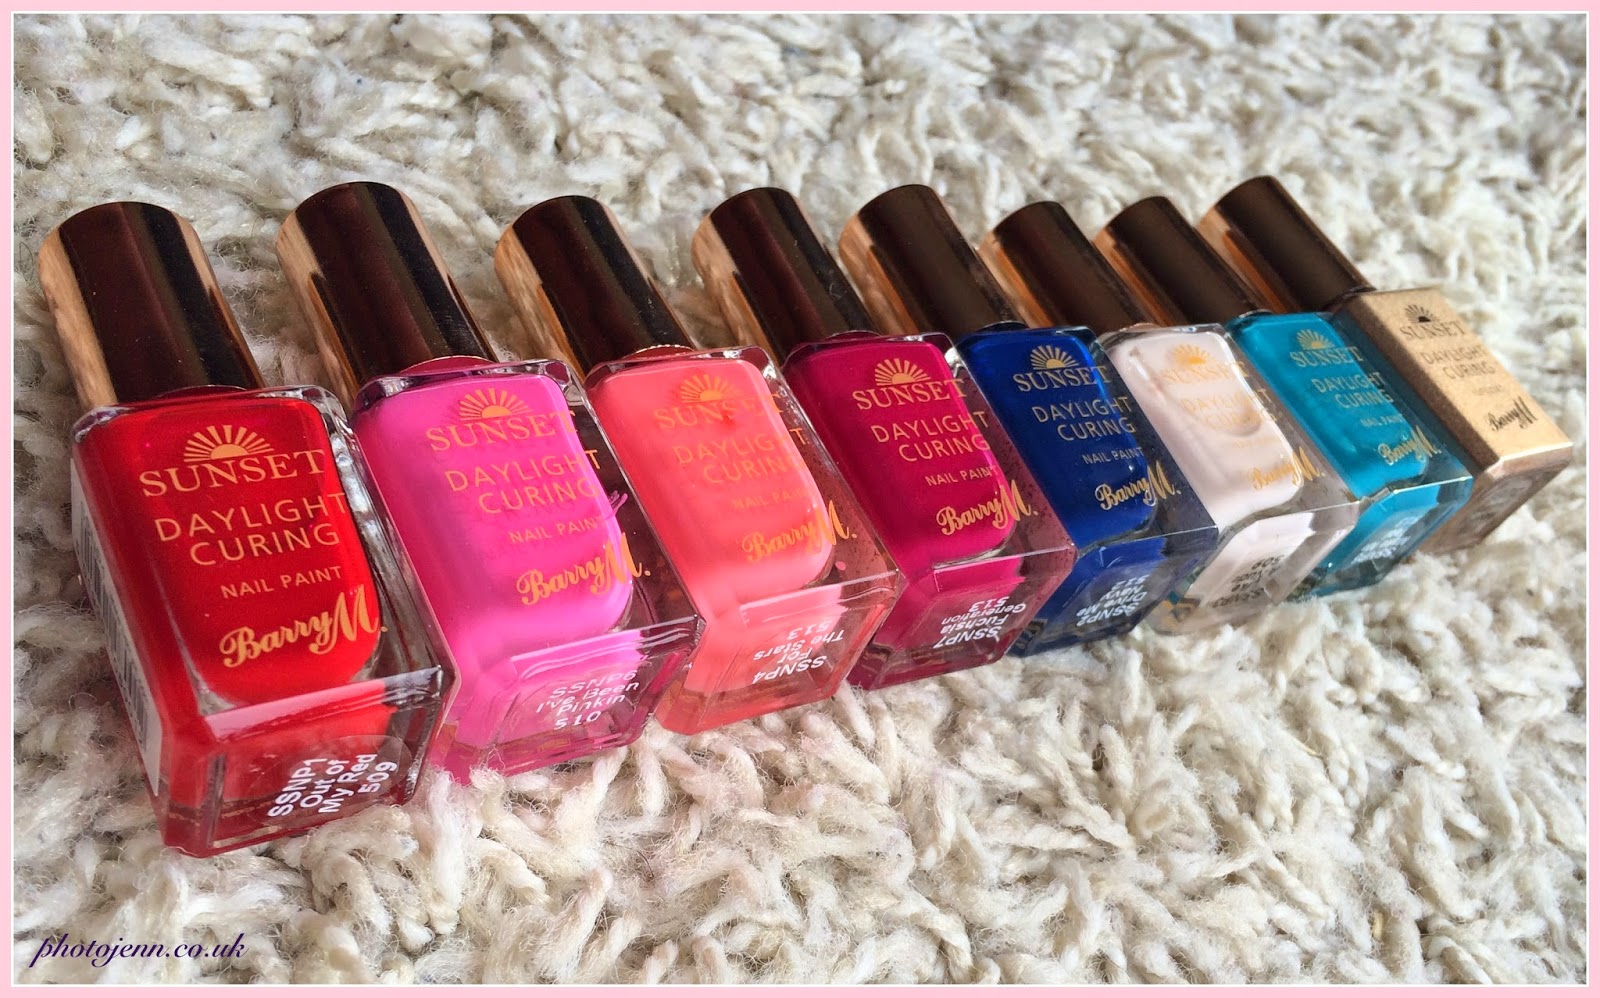 new-barry-m-summer-2015-sunset-daylight-curing-nail-paint